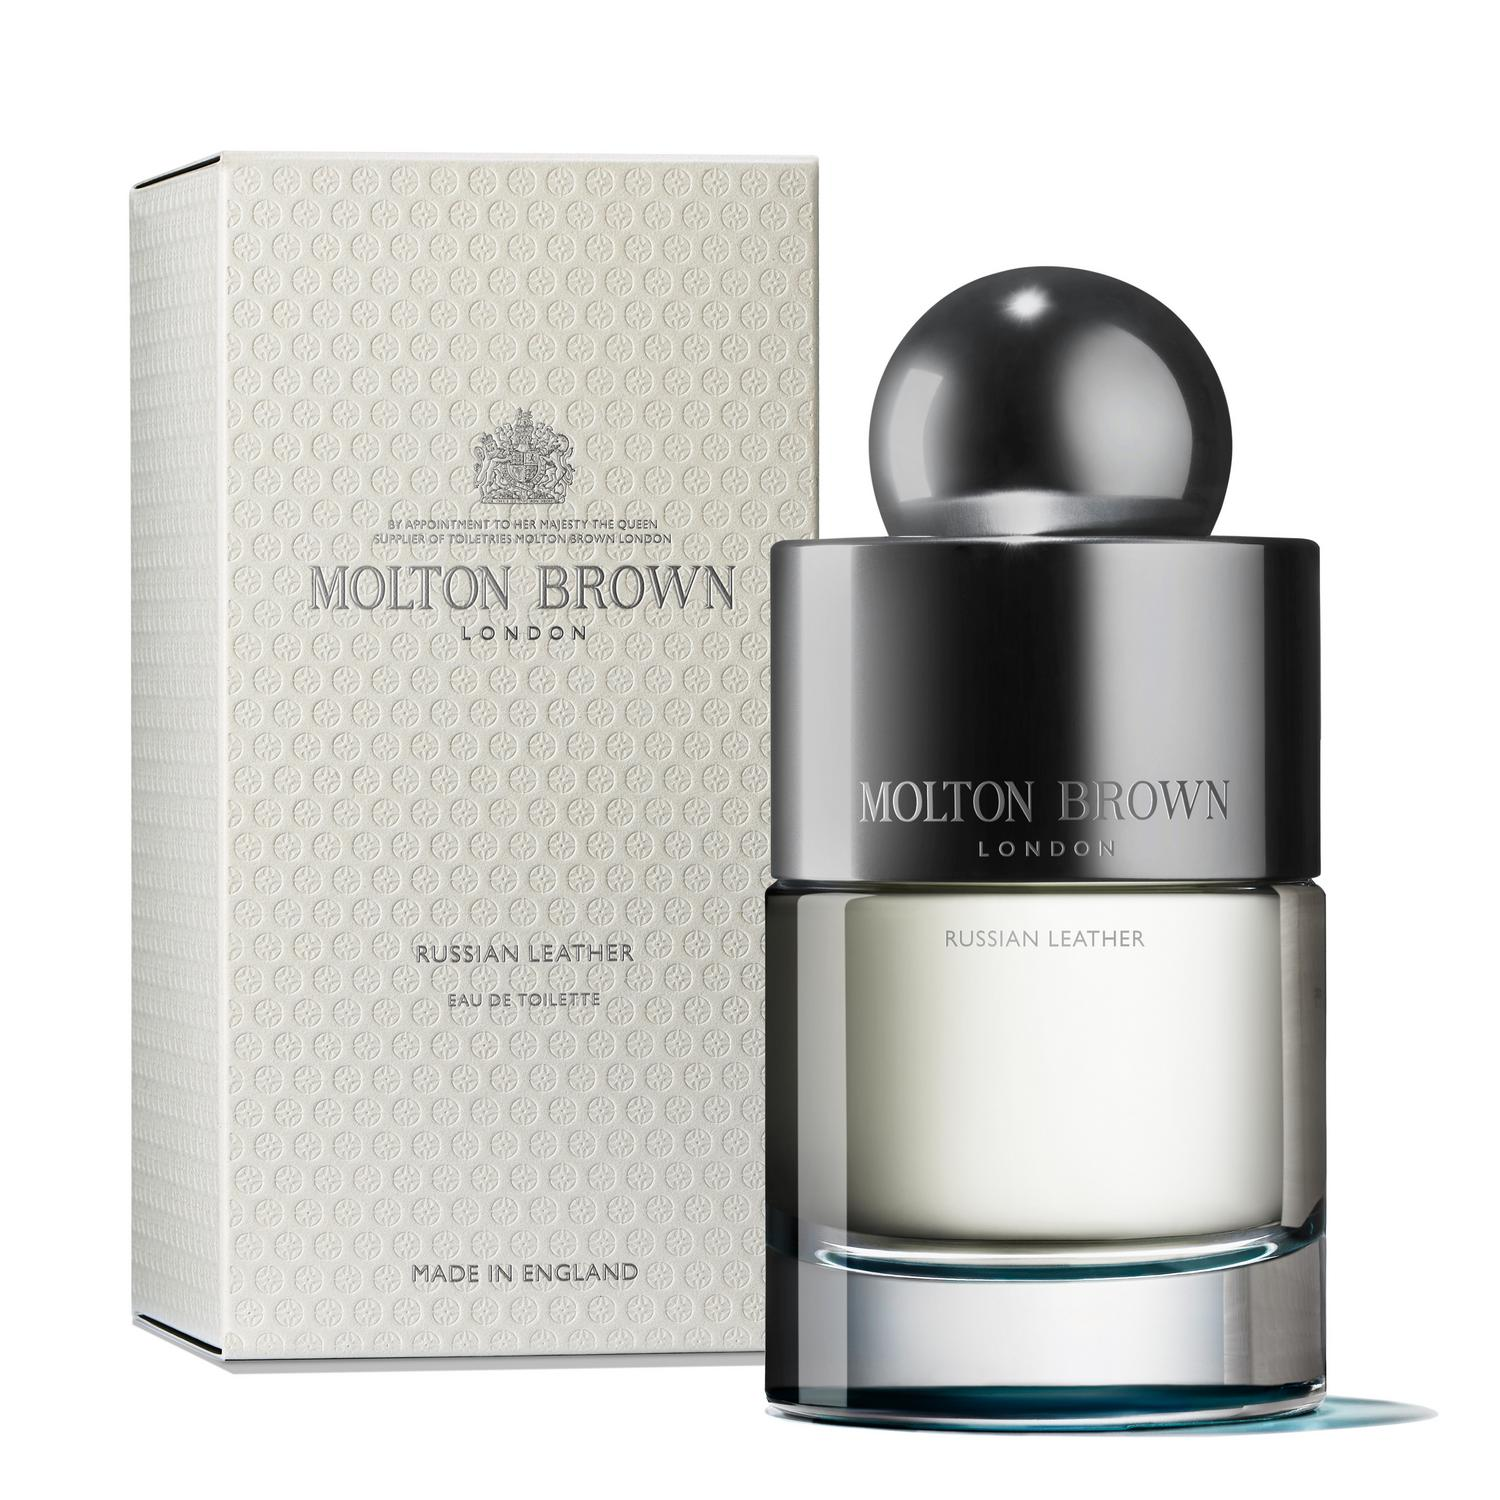 Russian Leather Eau de Toilette 50 ml, Fragrances, MOLTON BROWN, SUPERCONSCIOUS BERLIN- SUPERCONSCIOUS BERLIN